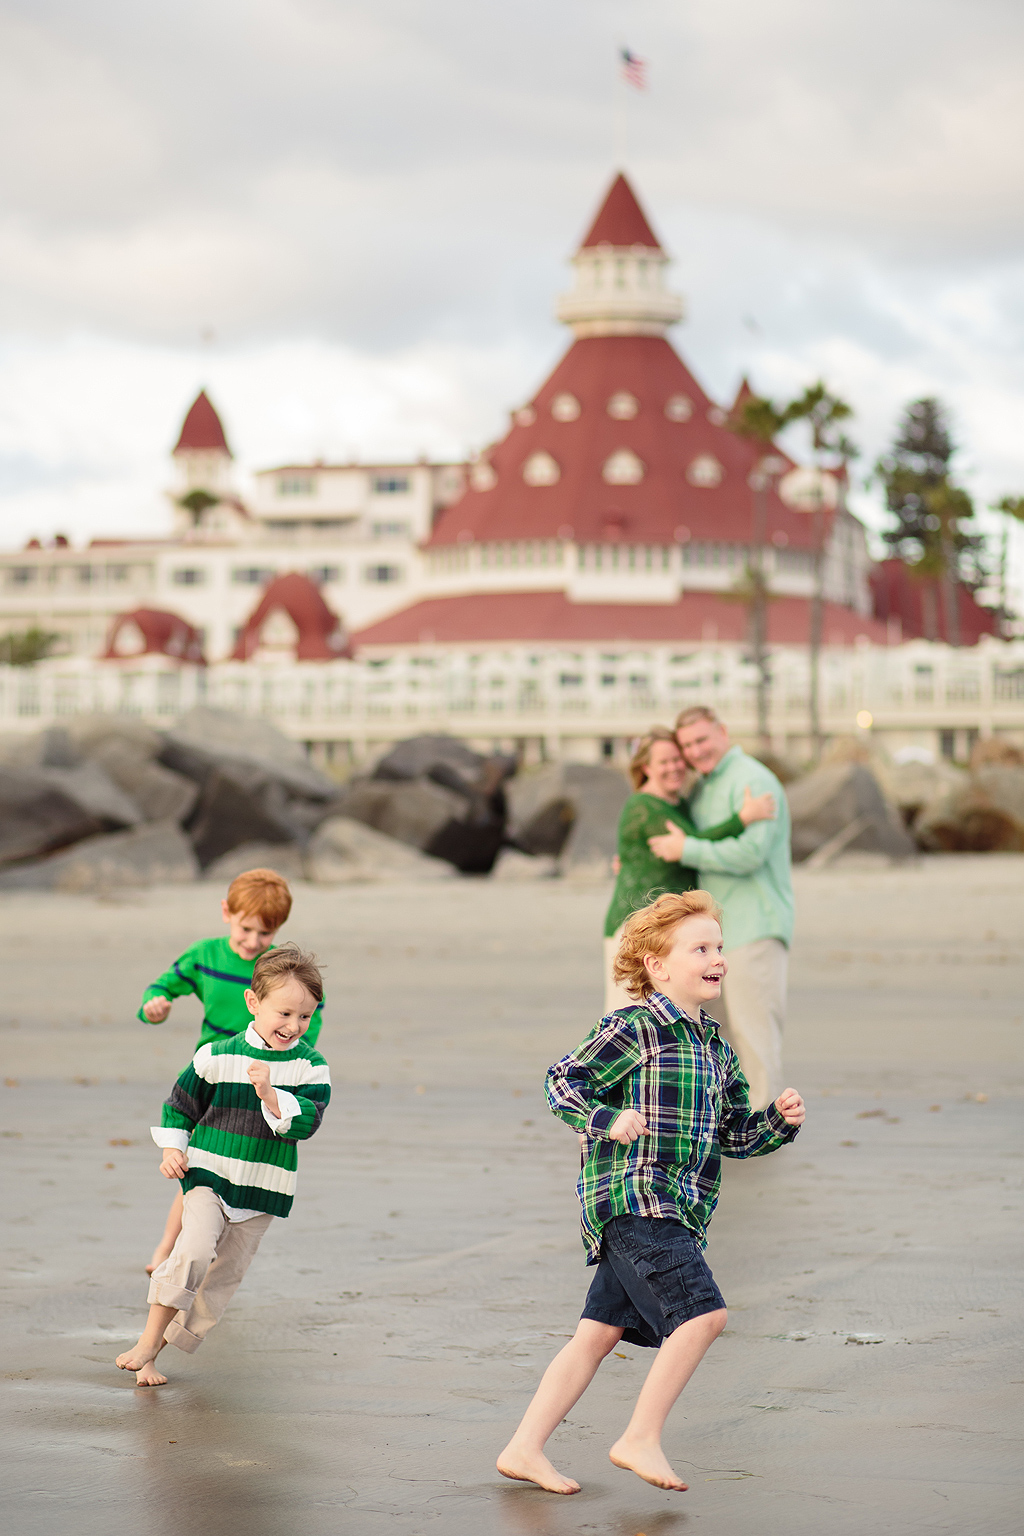 San Diego Coronado Beach Photographer